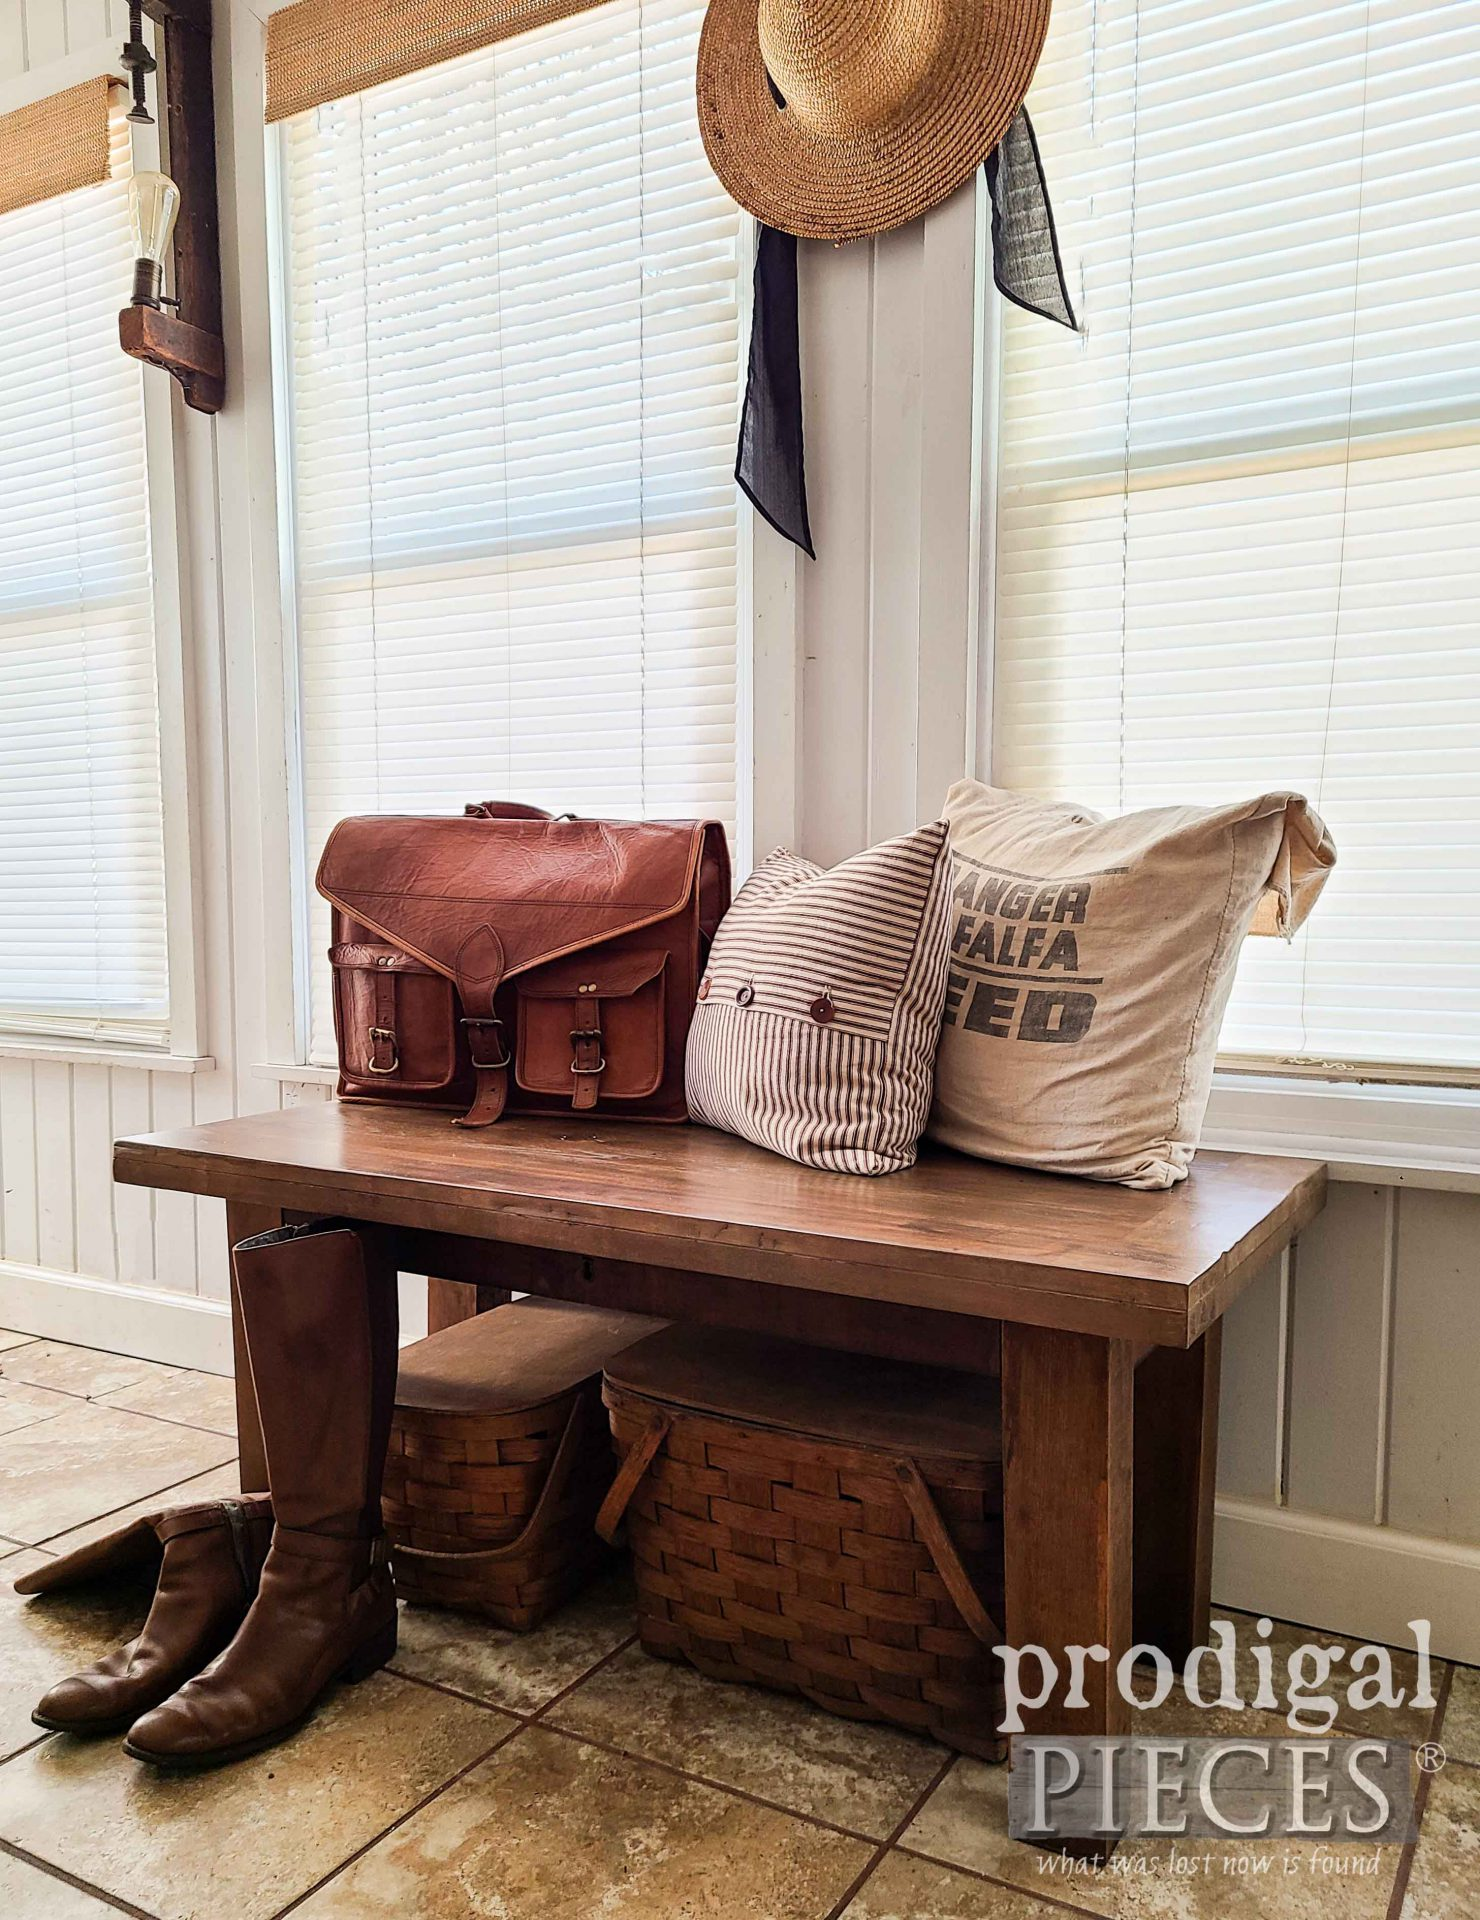 Farmhouse Style Entry Bench Built from Reclaimed Materials by Larissa of Prodigal Pieces   prodigalpieces.com #prodigalpieces #diy #home #farmhouse #homedecor